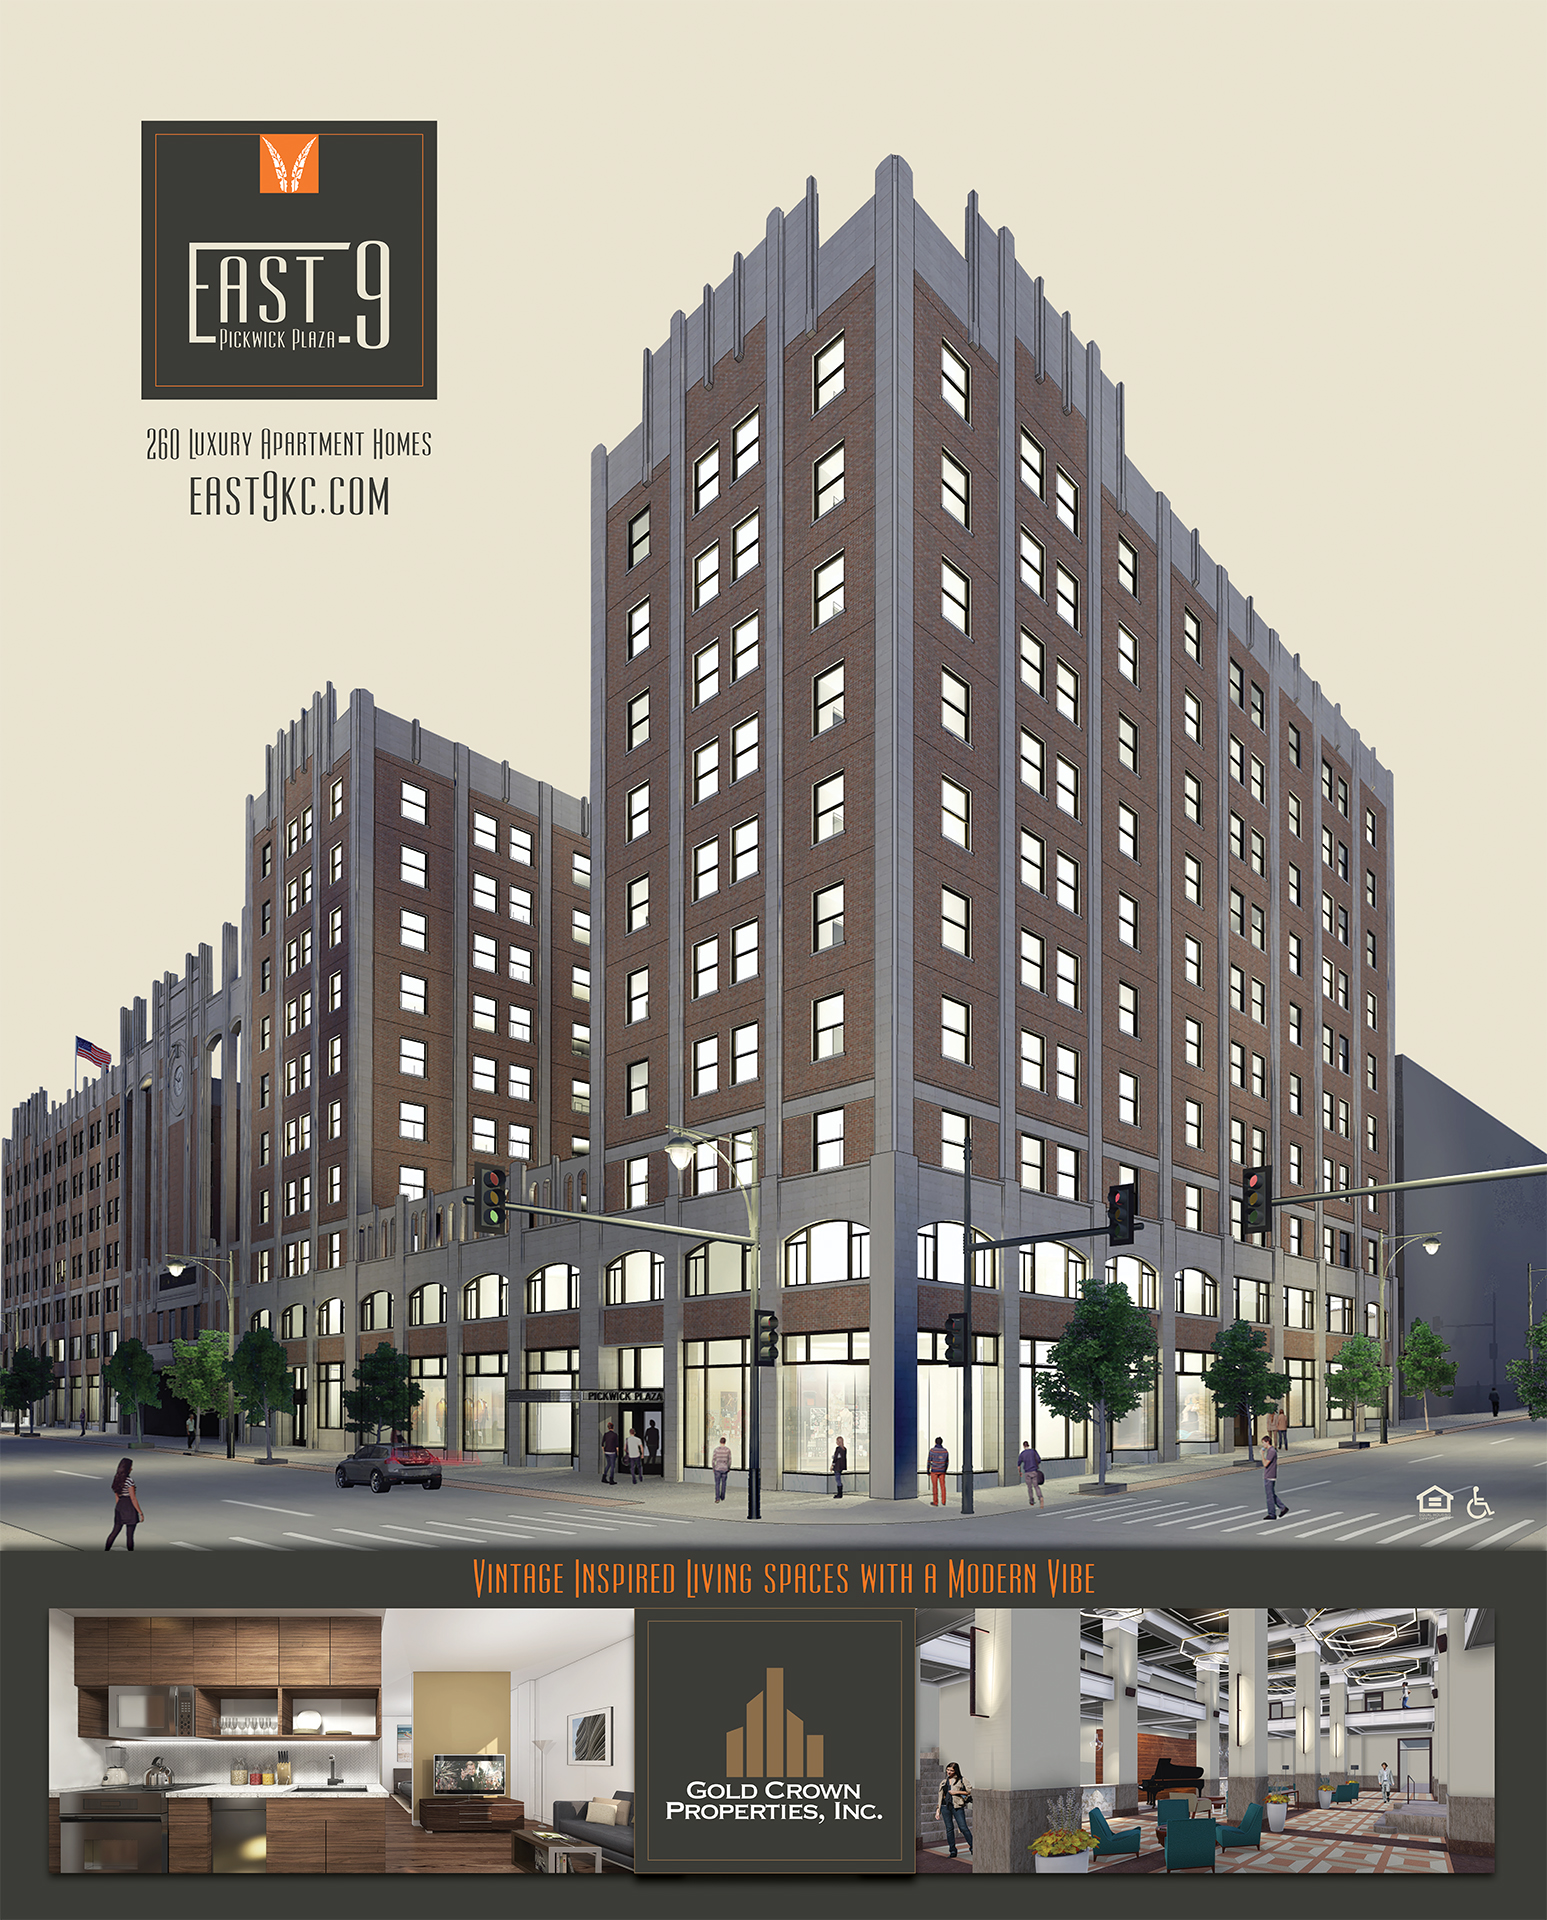 East 9 At Pickwick Plaza Announces Downtown Kansas City's